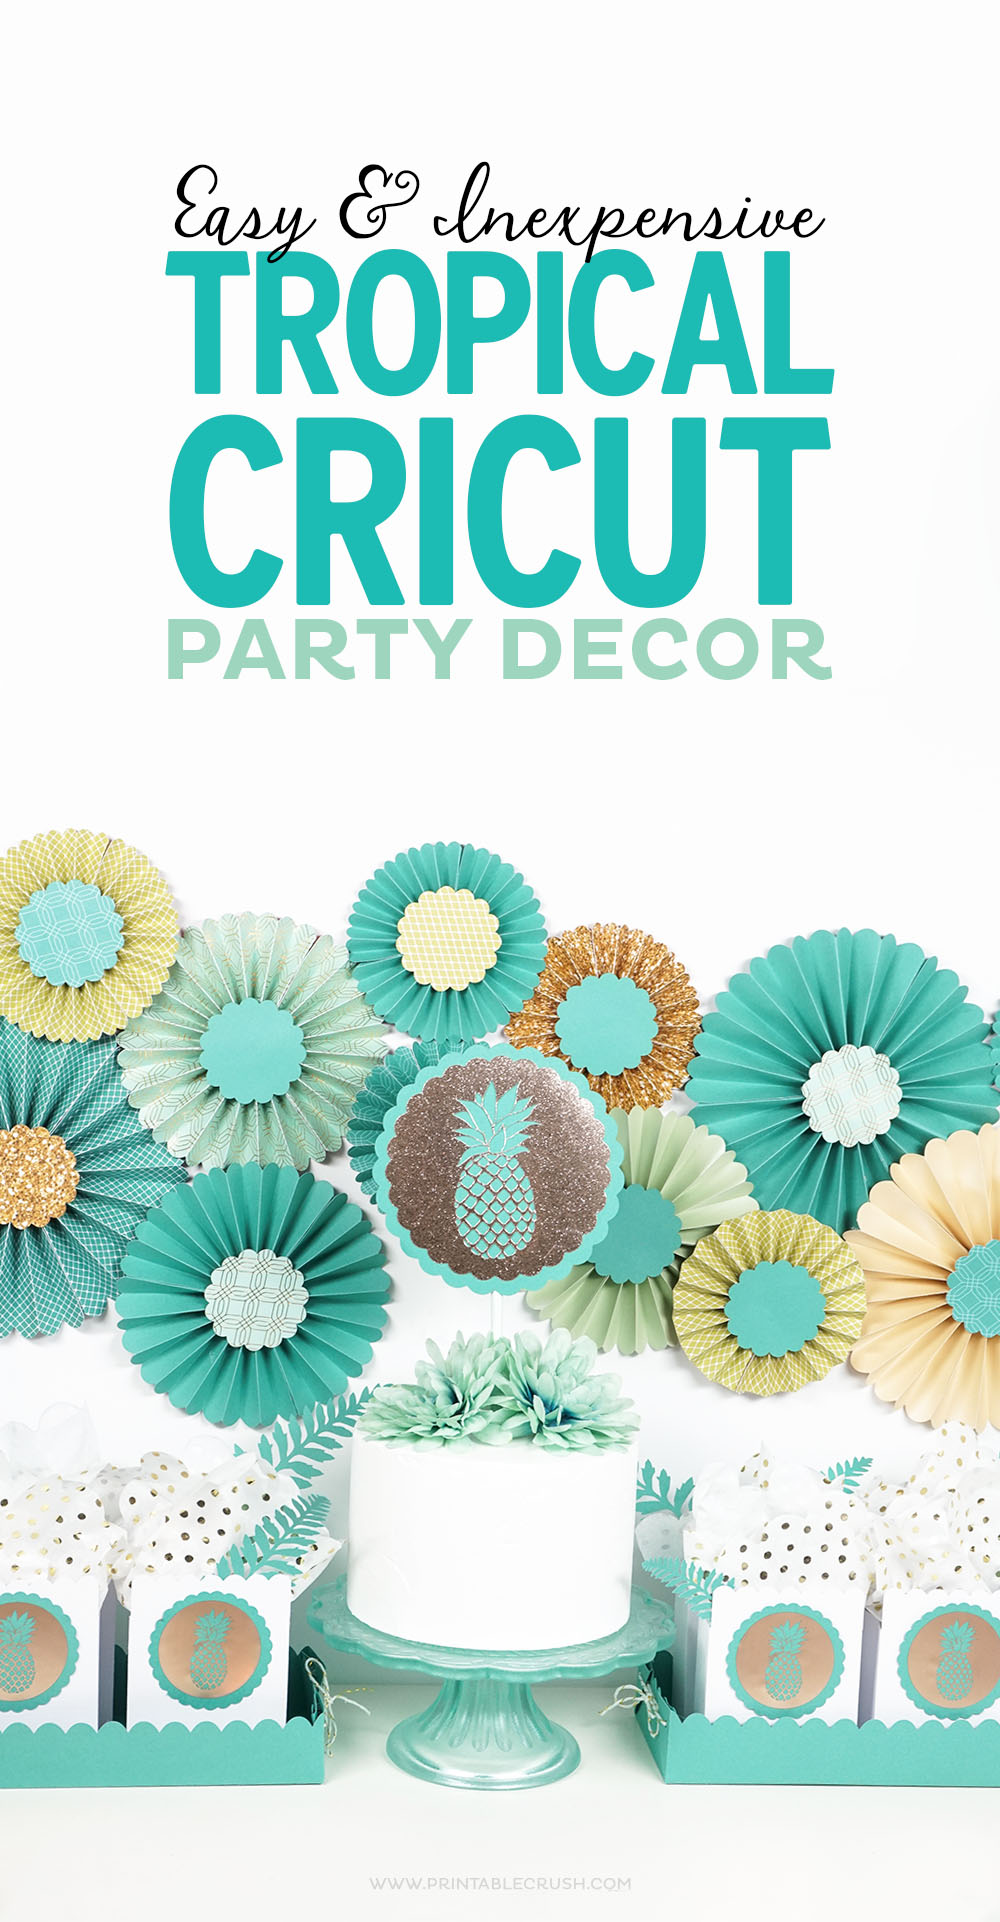 With the purchase of the new Martha StewartCricut® Explore Air™ 2 Special Edition, you'll get some gorgeous Tropical Cricut Party Decor graphics!